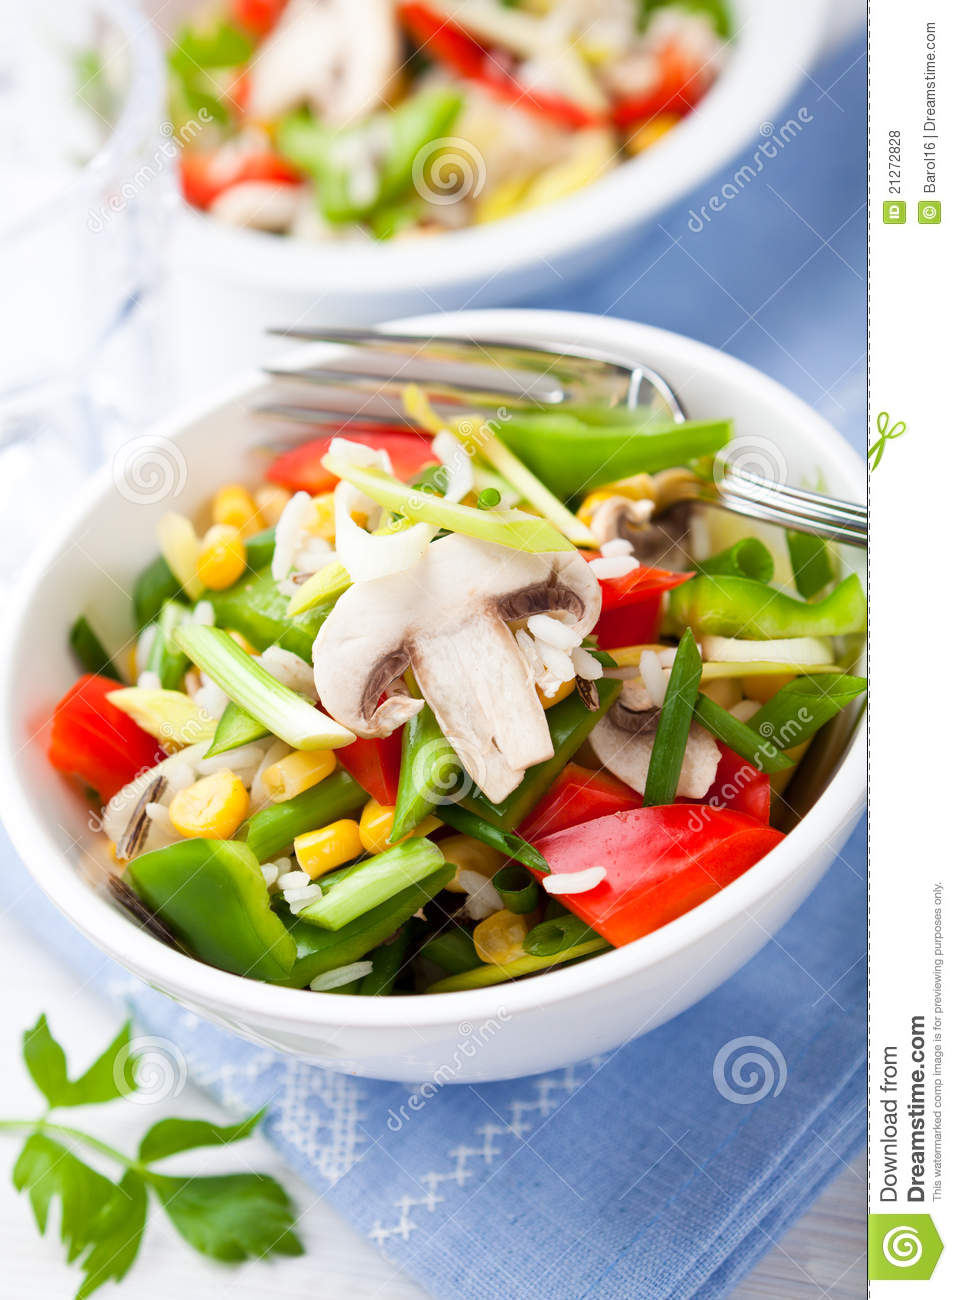 Rice salad with mushrooms and vegetables